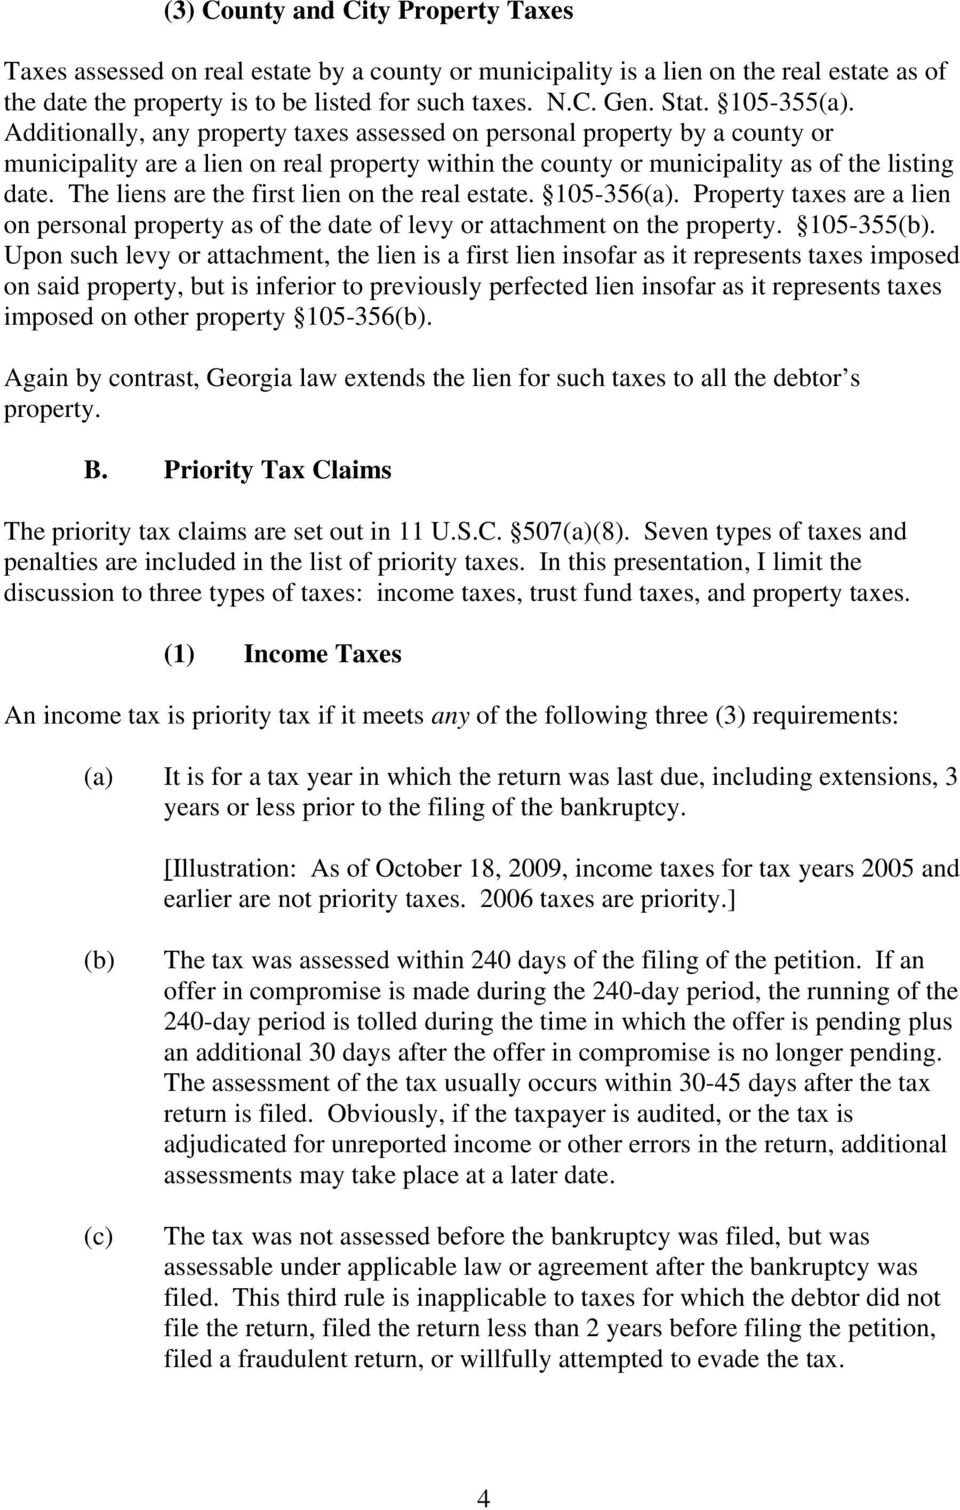 The liens are the first lien on the real estate. 105-356(a). Property taxes are a lien on personal property as of the date of levy or attachment on the property. 105-355(b).